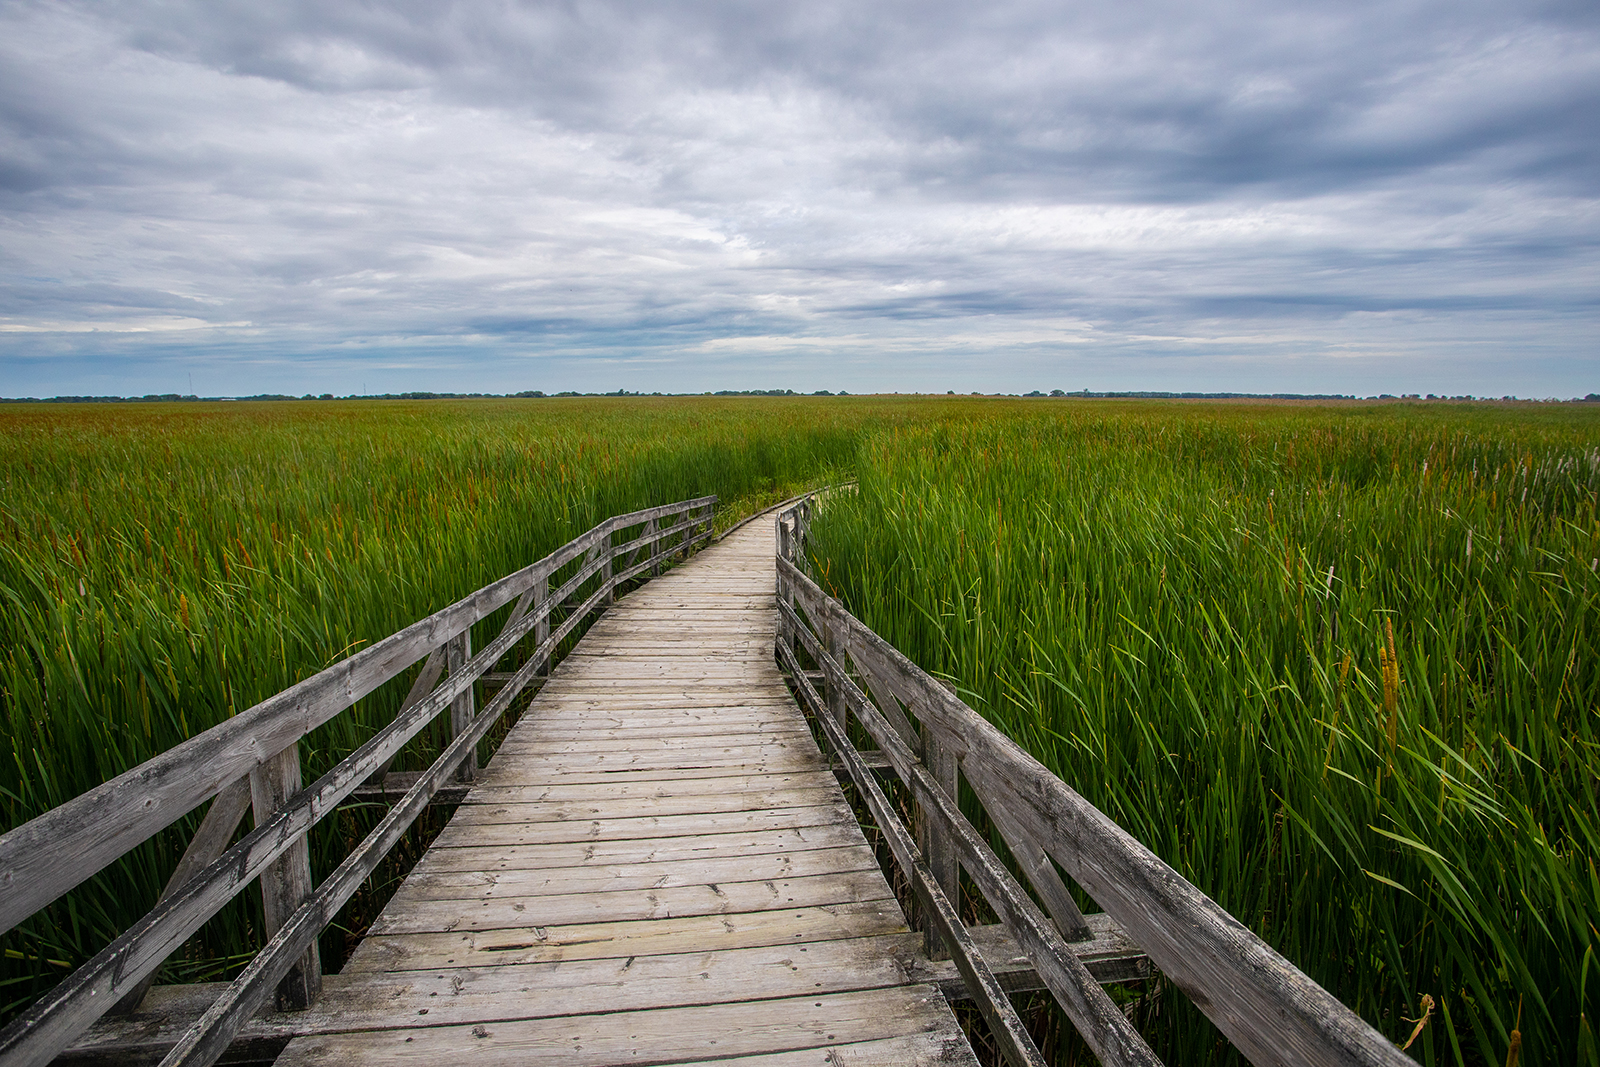 Wooden boardwalk through a marshland